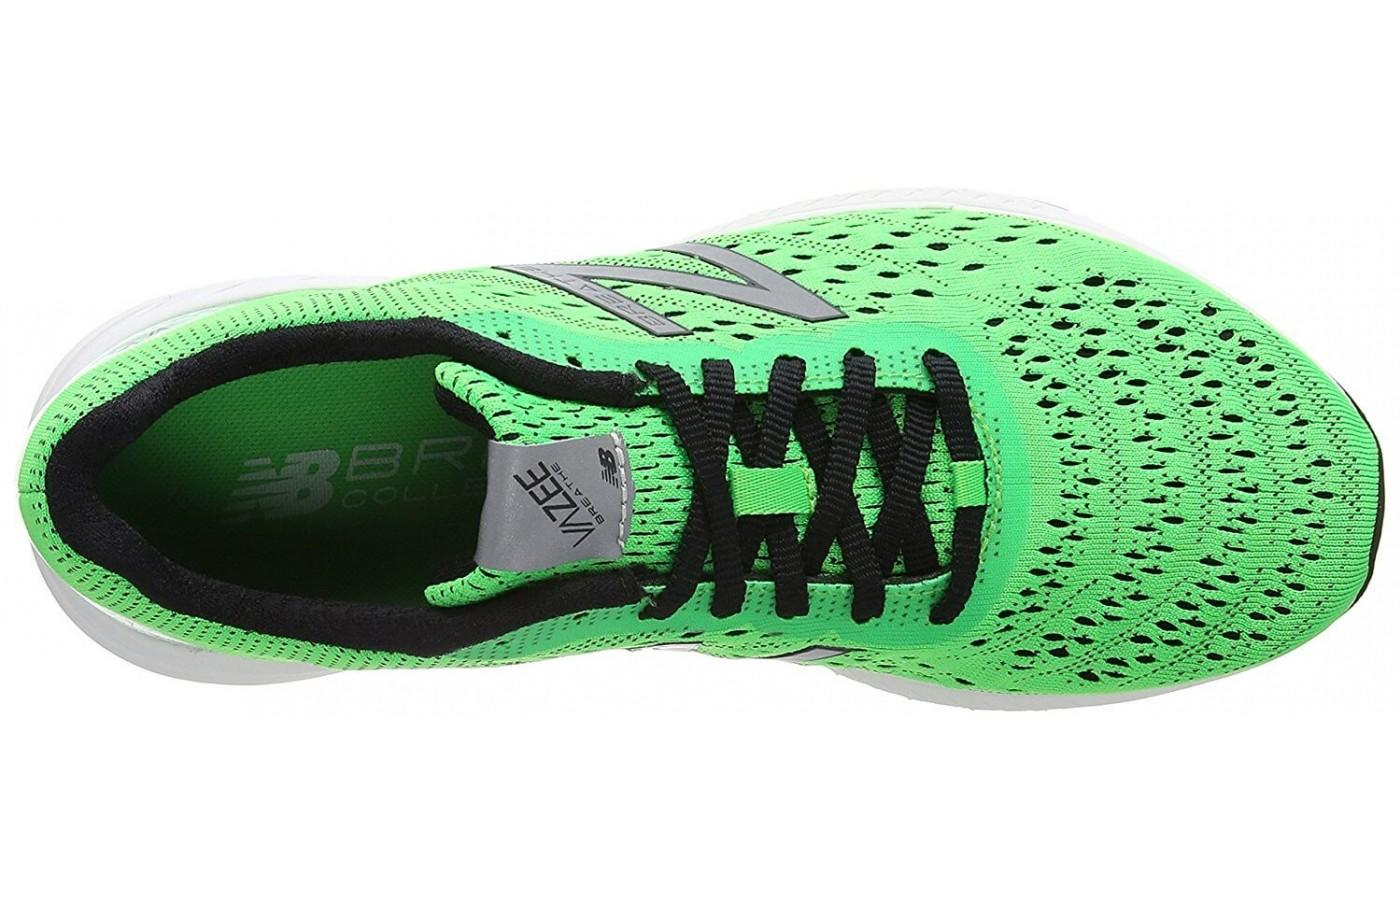 f92462682935f The lacing system provides a secure fit but it also provides a flexible  feel.